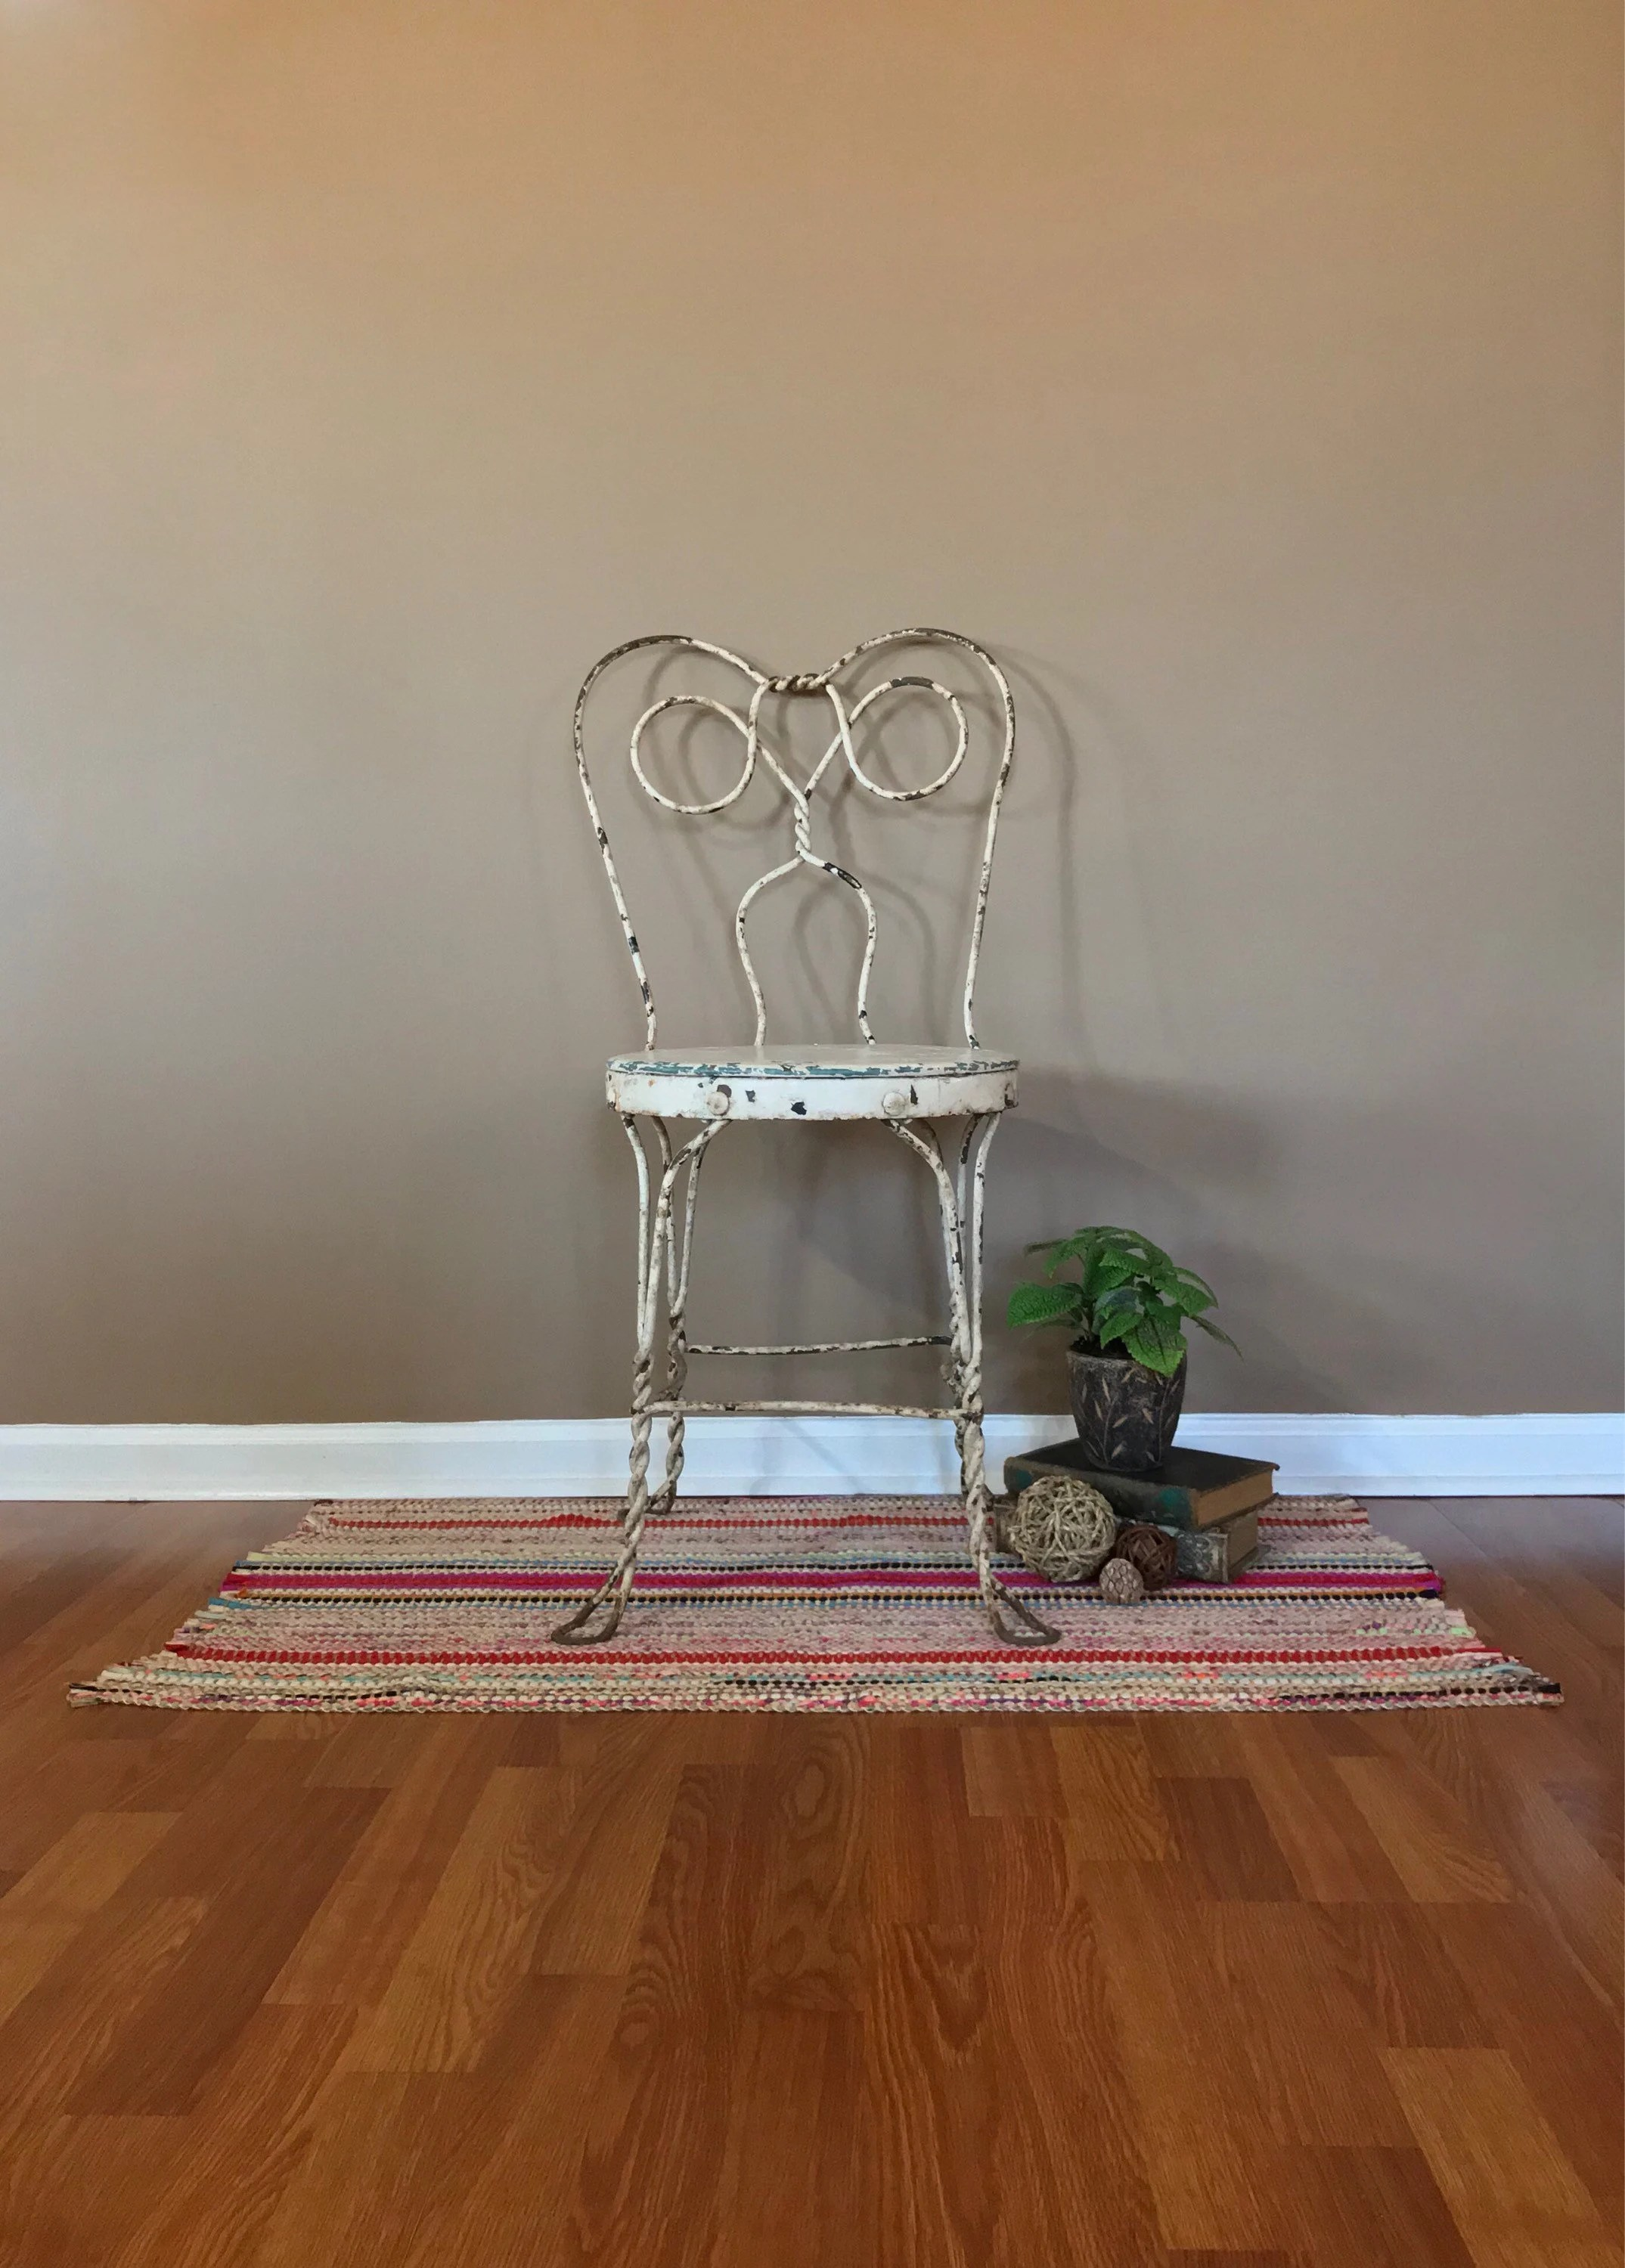 Antique Accent Chairs Vintage Ice Cream Parlor Chair Metal Accent Chair Antique Chair Outdoor Accent Chair Accent Chair Painted Chair